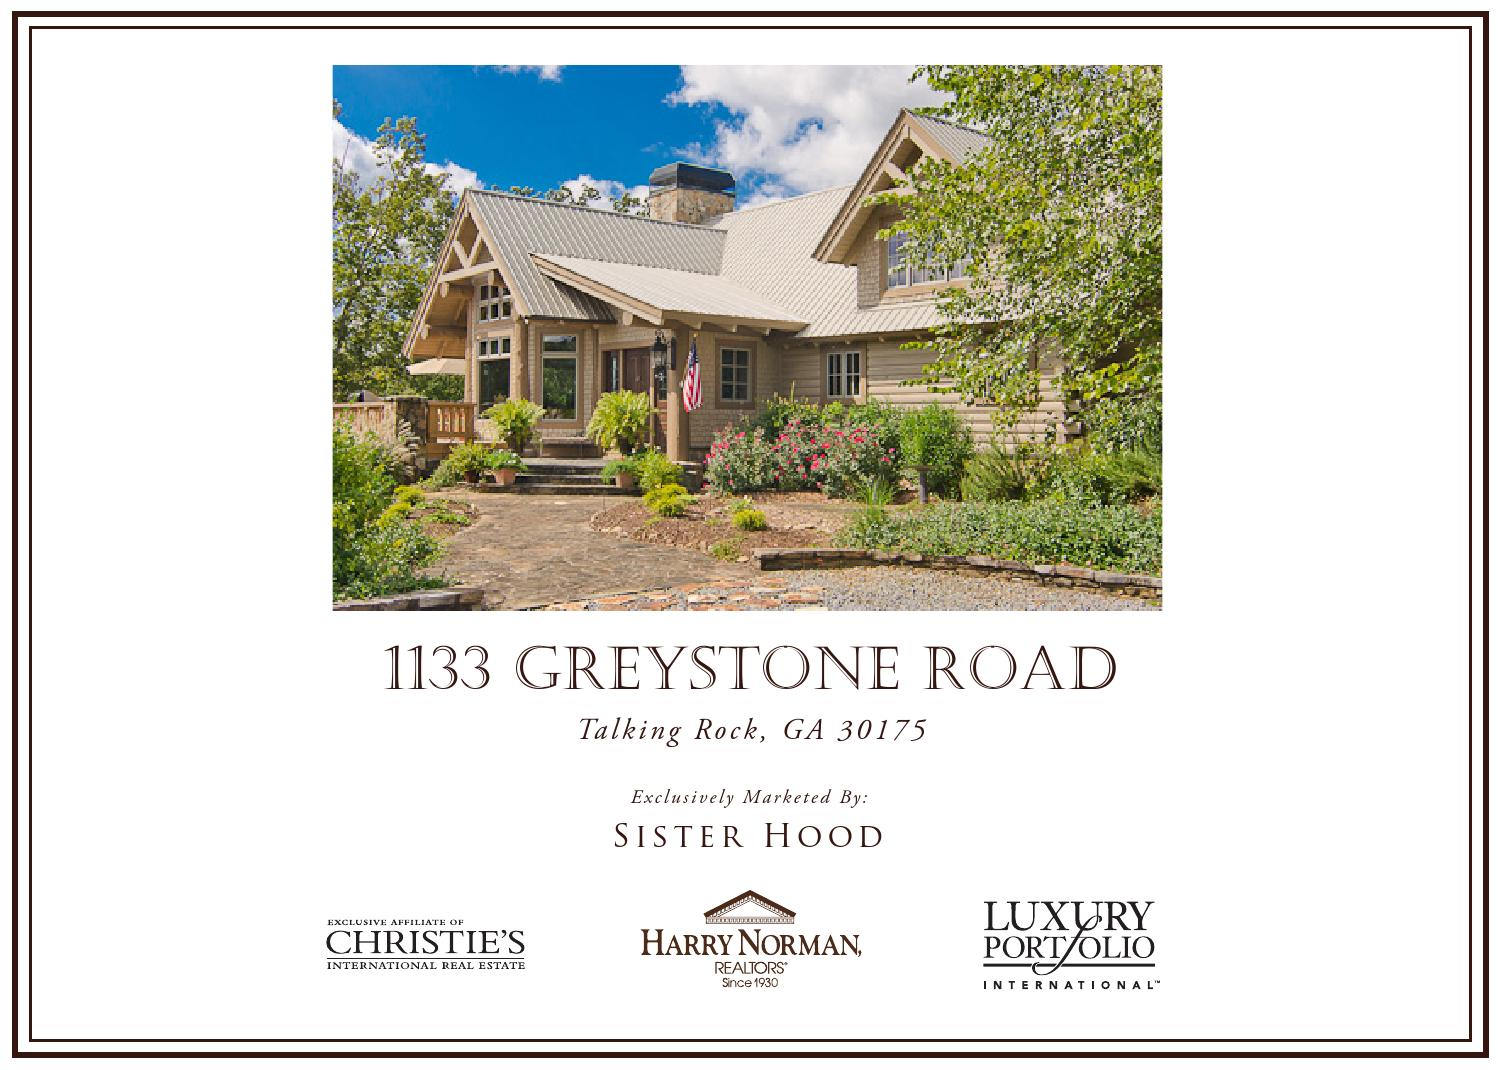 1133 Greystone Road by Harry Norman - Buckhead NW Office ...